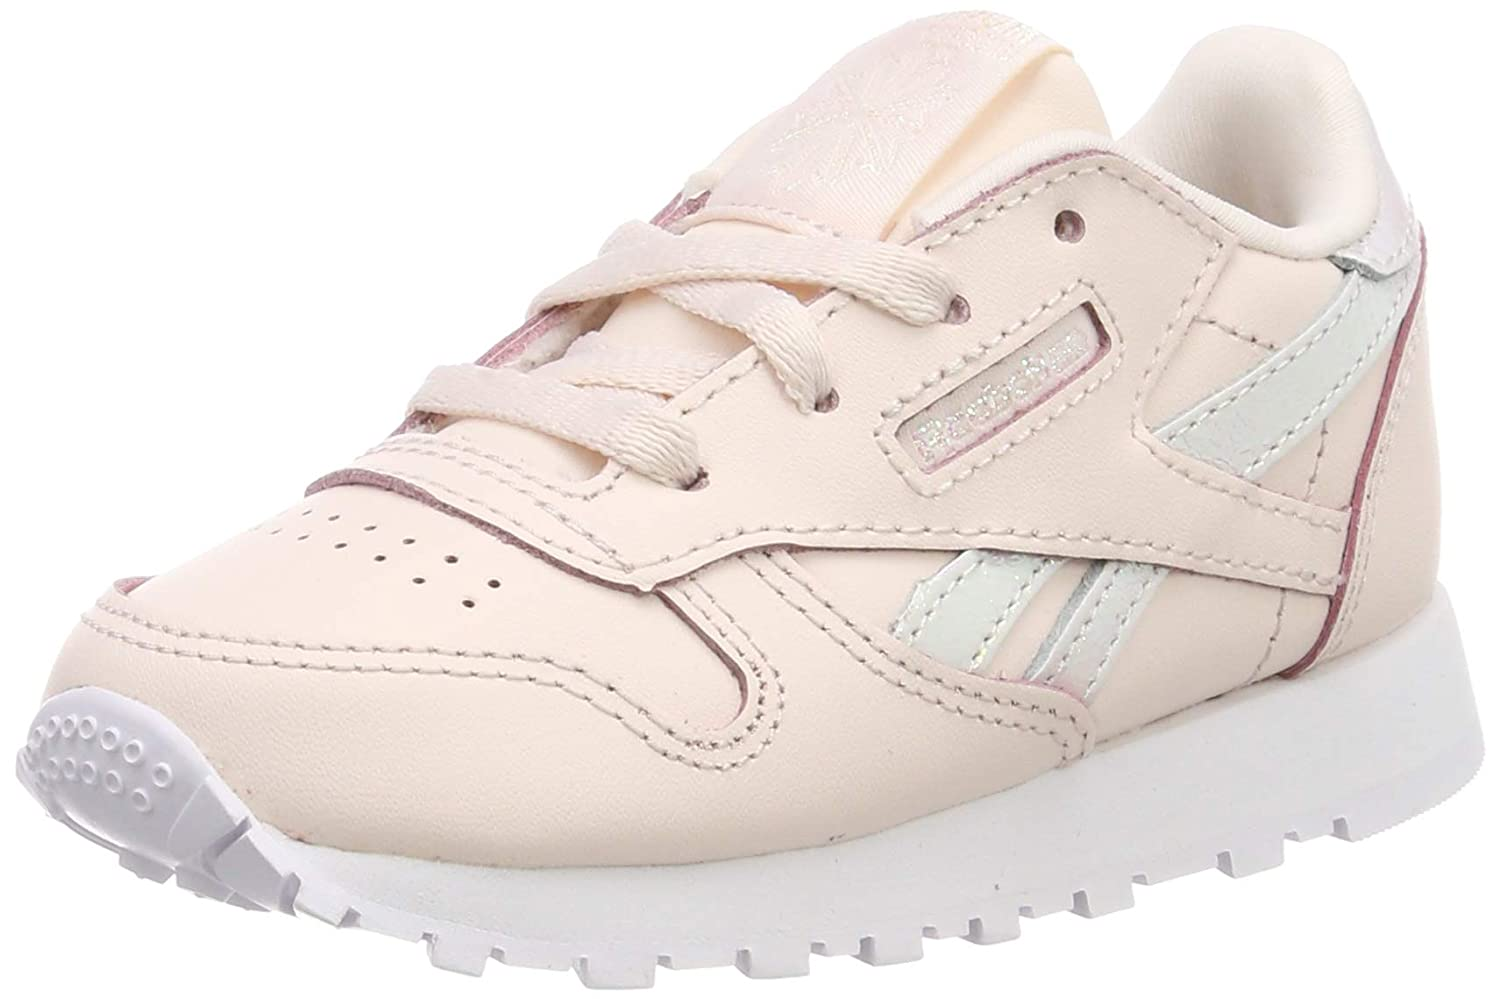 Reebok Classic Leather Chaussures de Gymnastique Fille